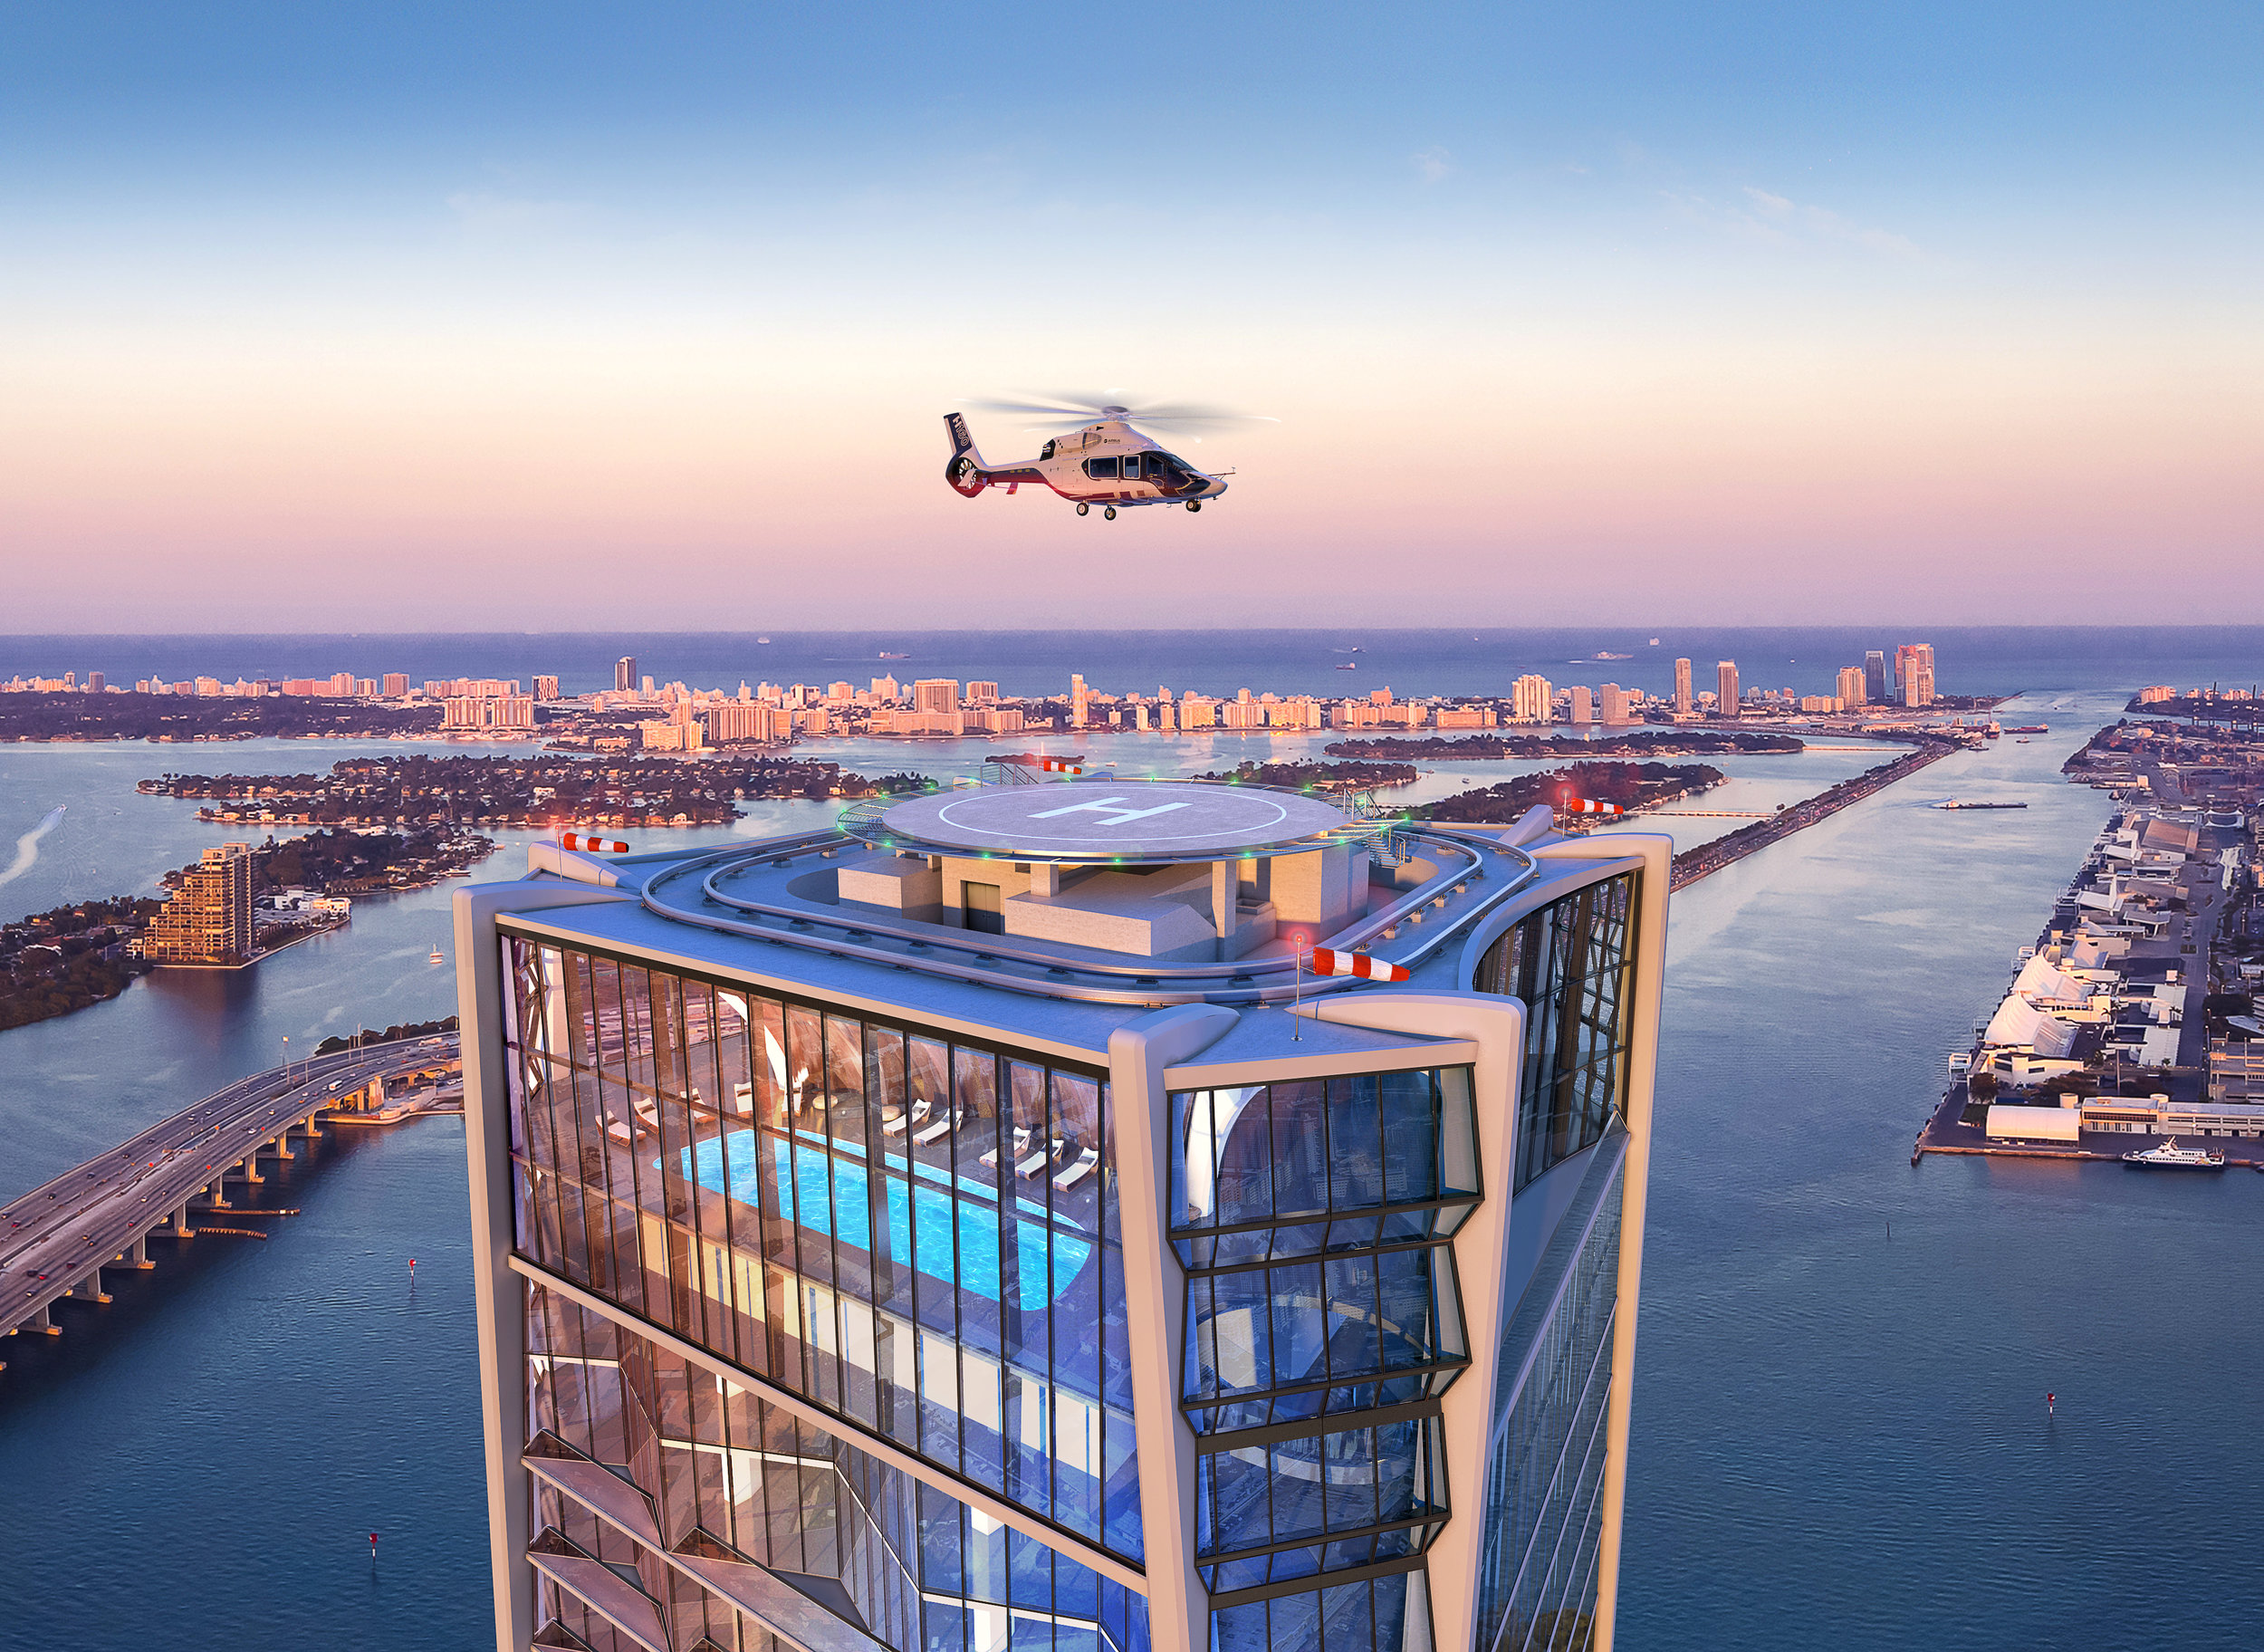 Zaha Hadid's One Thousand Museum Reveals The East Coast's Only Private Rooftop Residential Heliport